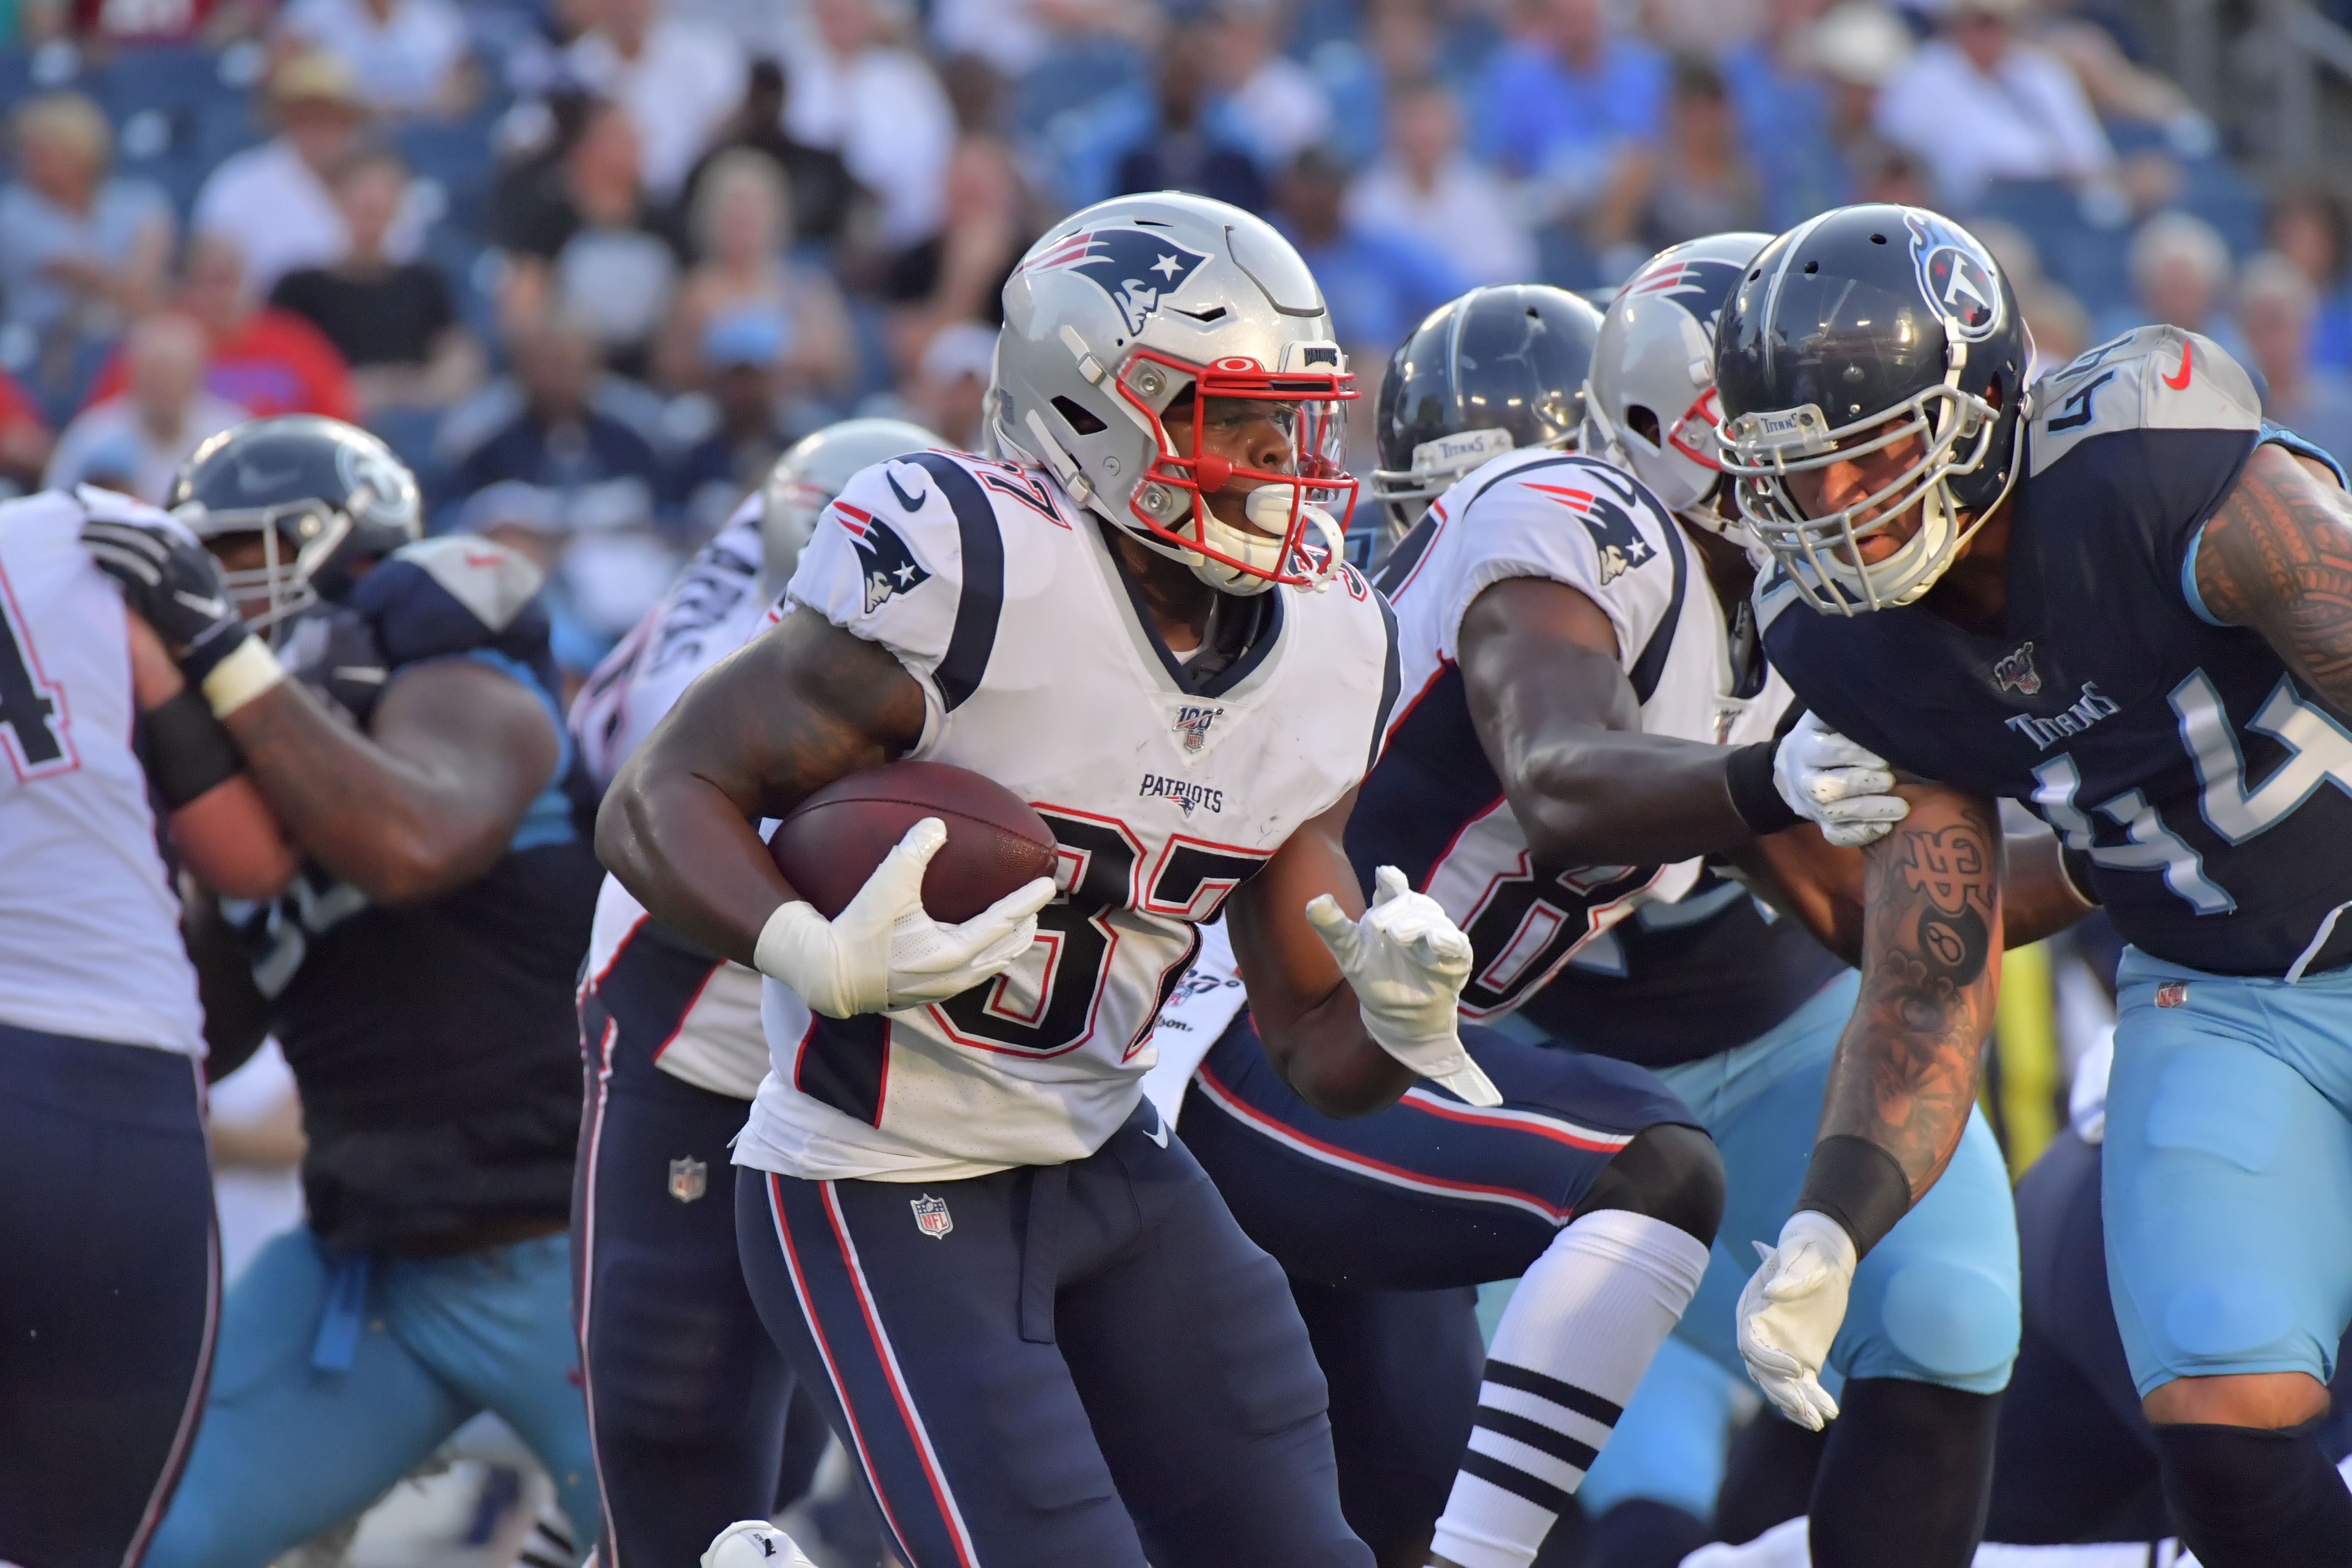 It's time for Patriots' rookie RB Damien Harris to get his chance